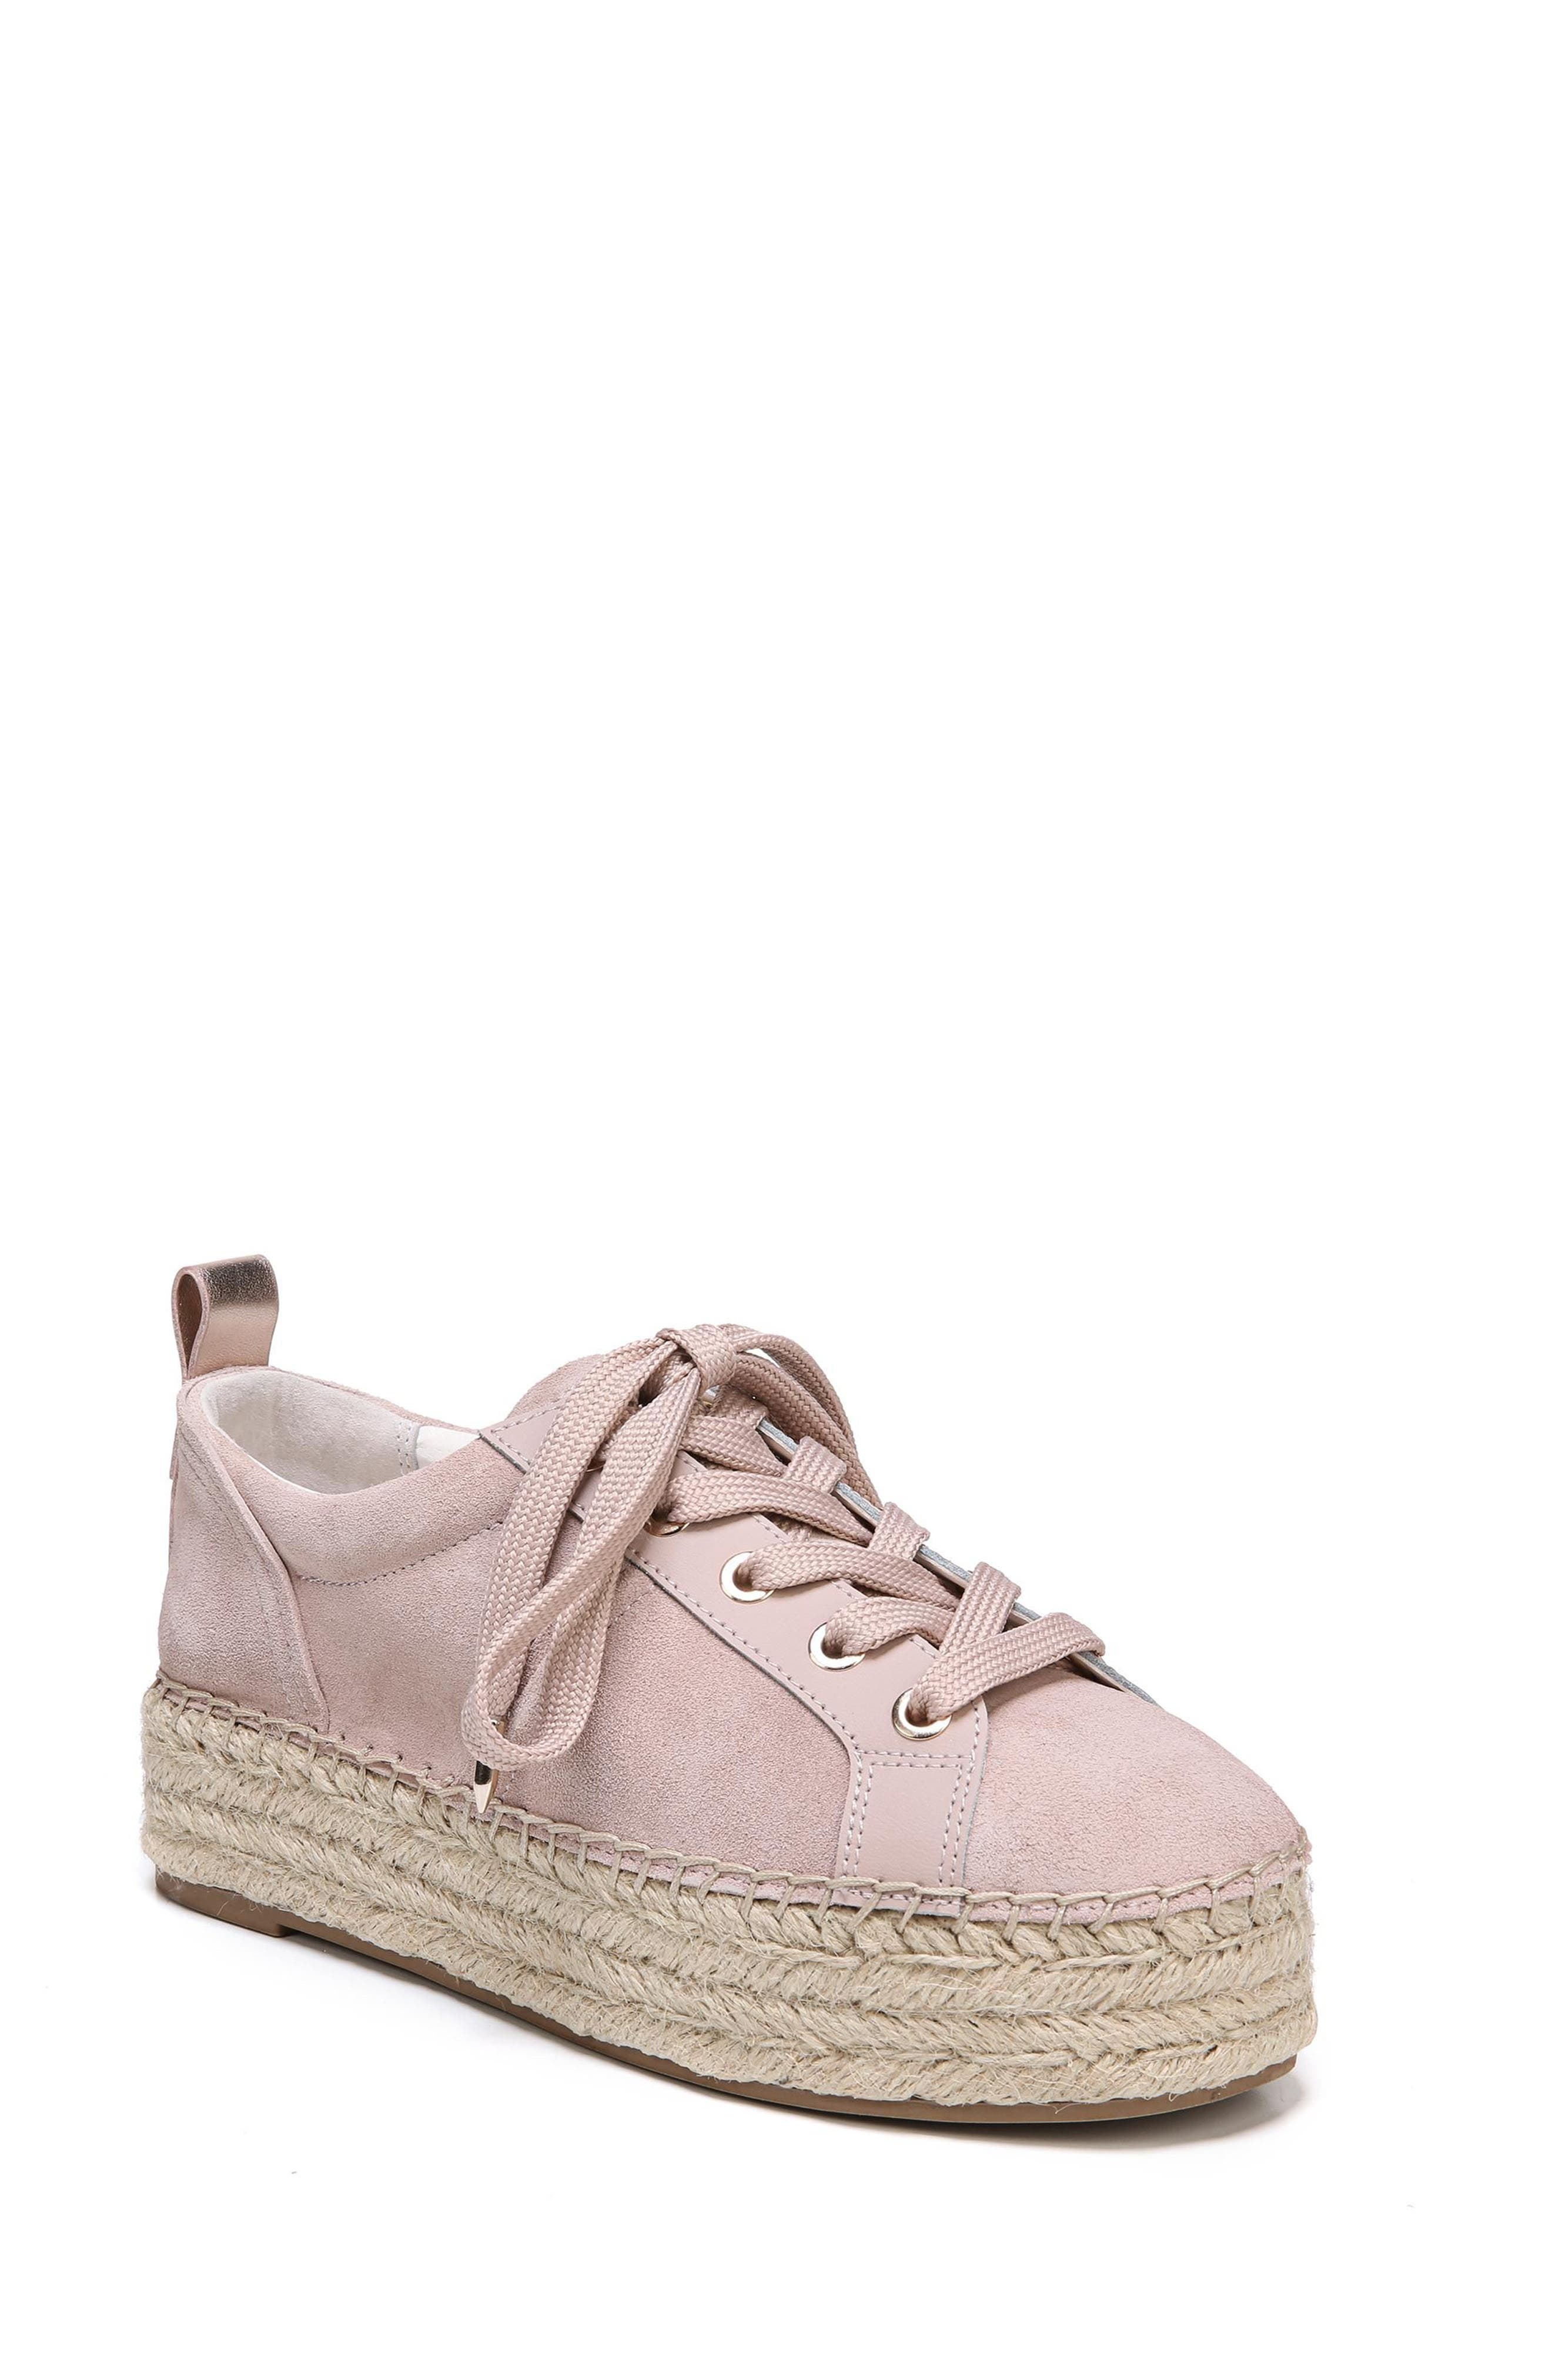 Carleigh Espadrille Sneaker,                         Main,                         color, Blush Leather